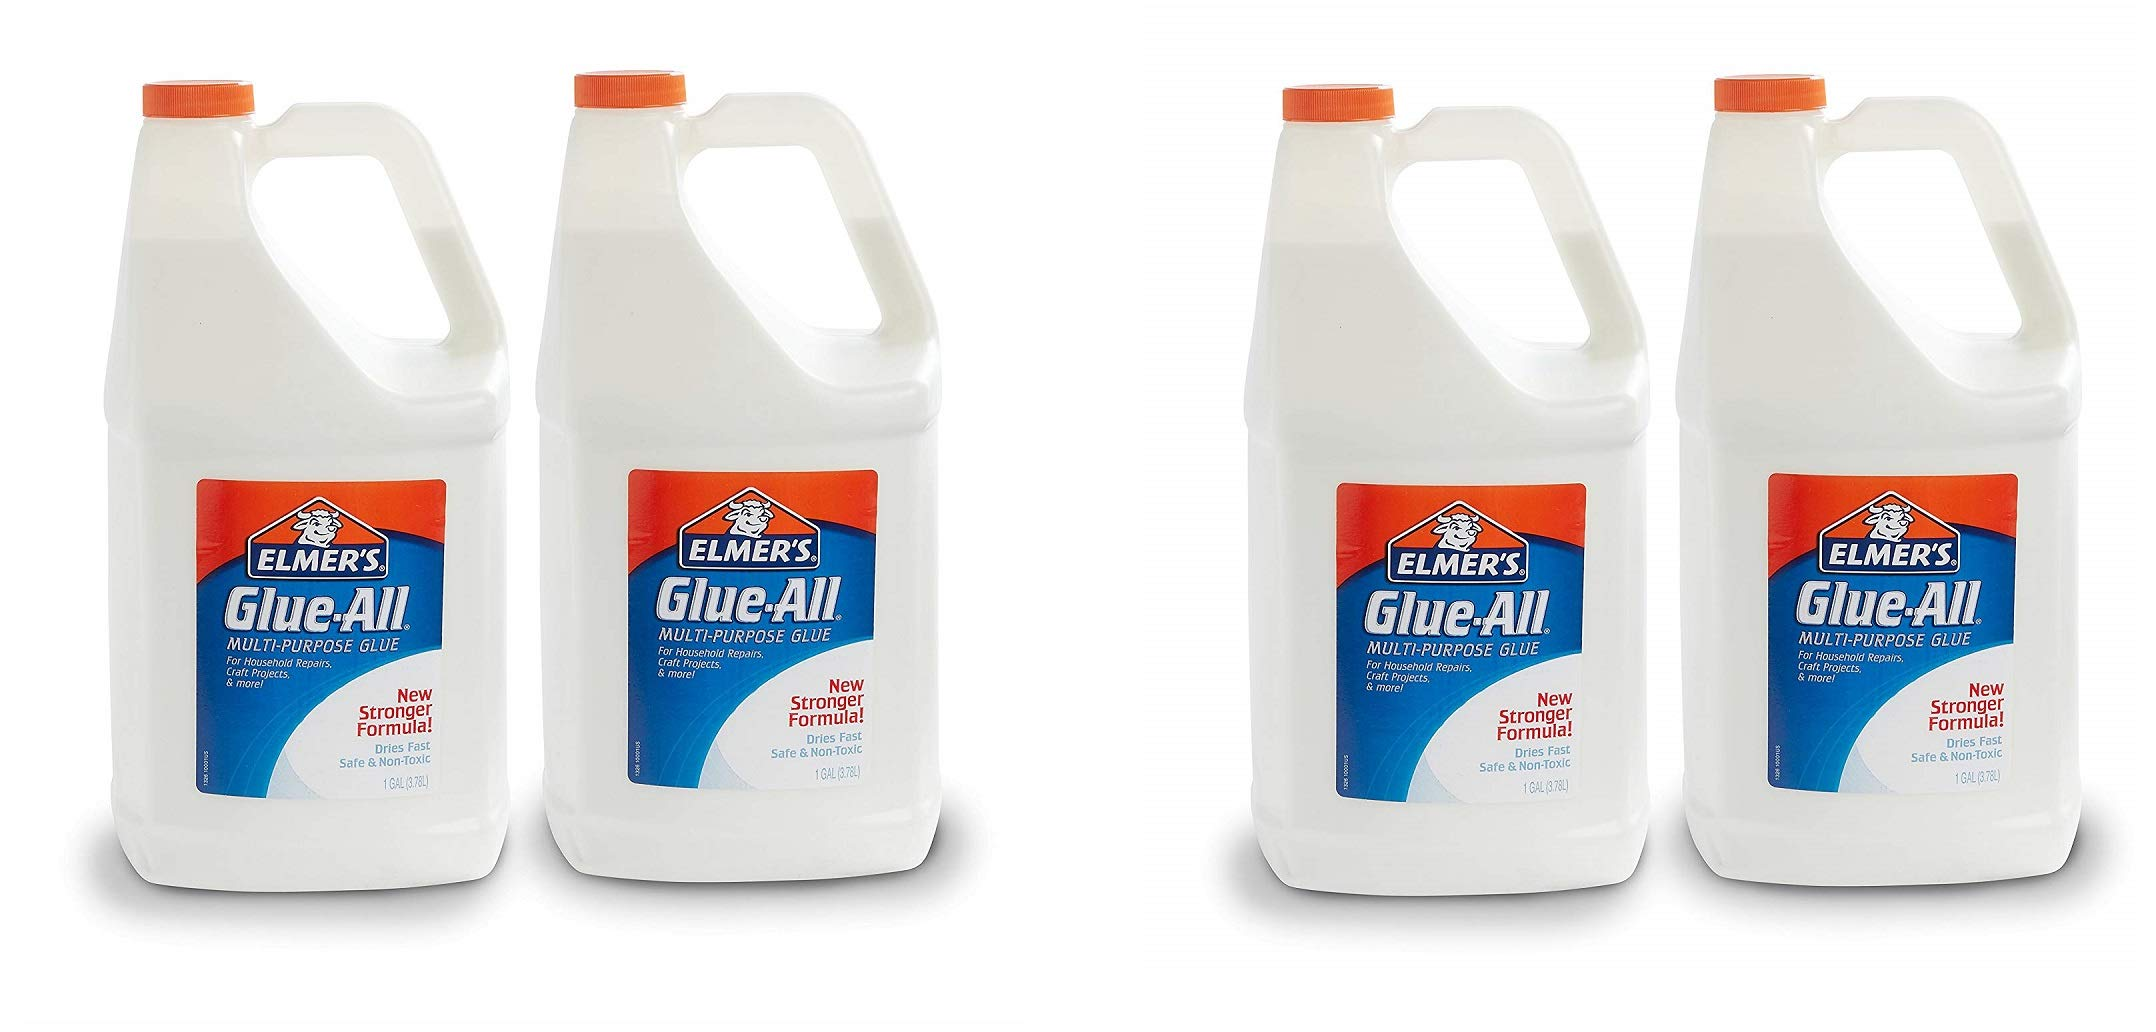 Elmers Glue-All Multi-Purpose Liquid Glue, Extra Strong, 1 Gallon, Great for Making Slime, 4 Pack